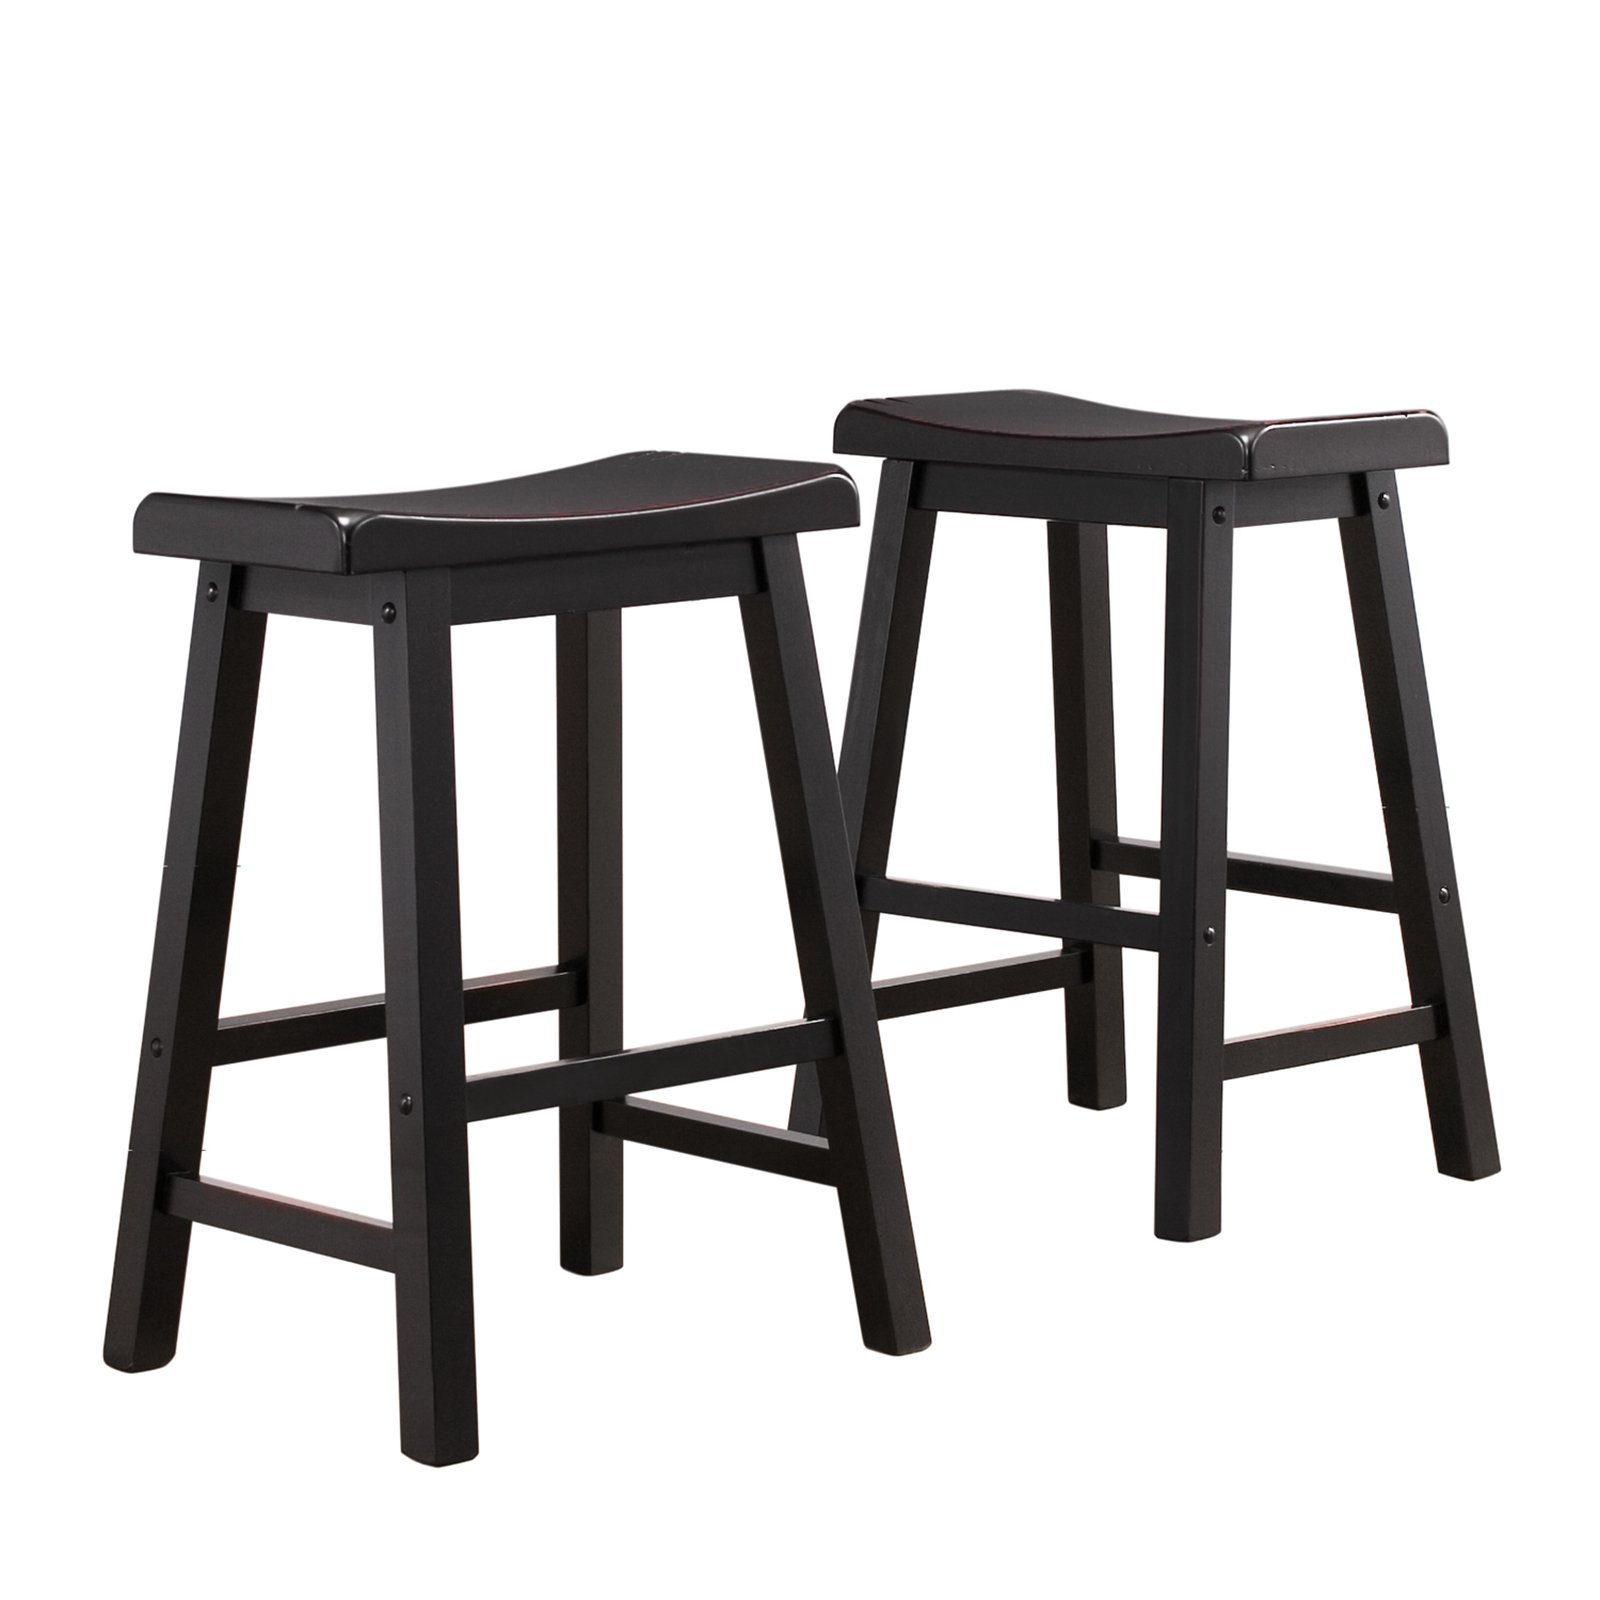 Ashby Counter Stools 24 Quot Set Of 2 Black Rubbed Walmart Com